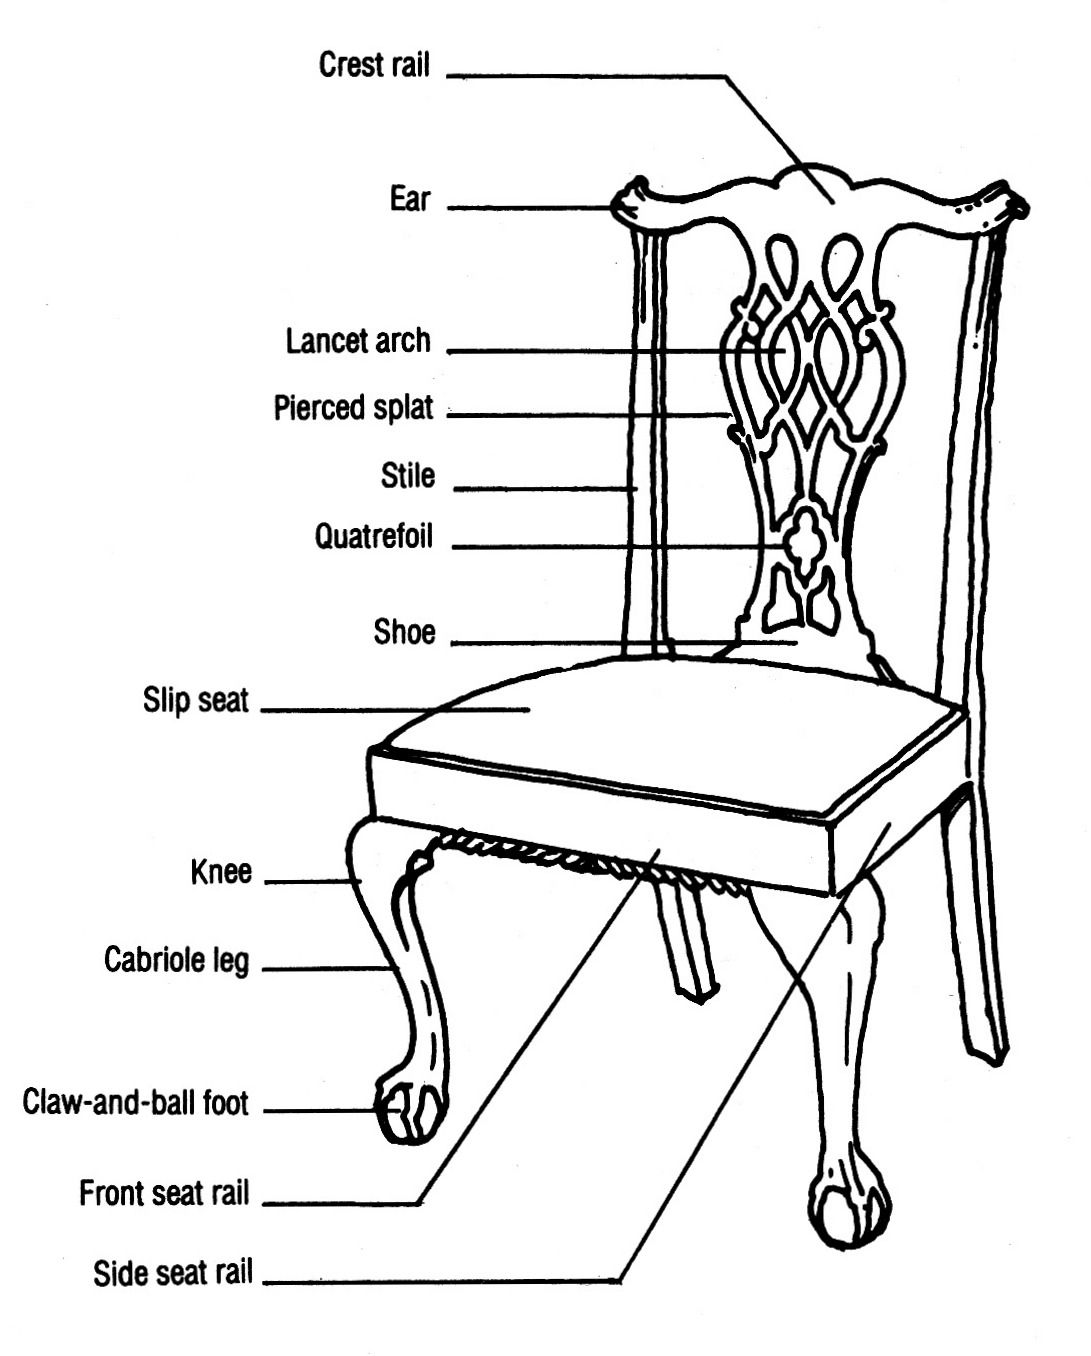 Chair antique queen anne chair the buzz on antiques antique chairs 101 - 487d9e2c0855f3f37a6d4dc34494c55c Jpg